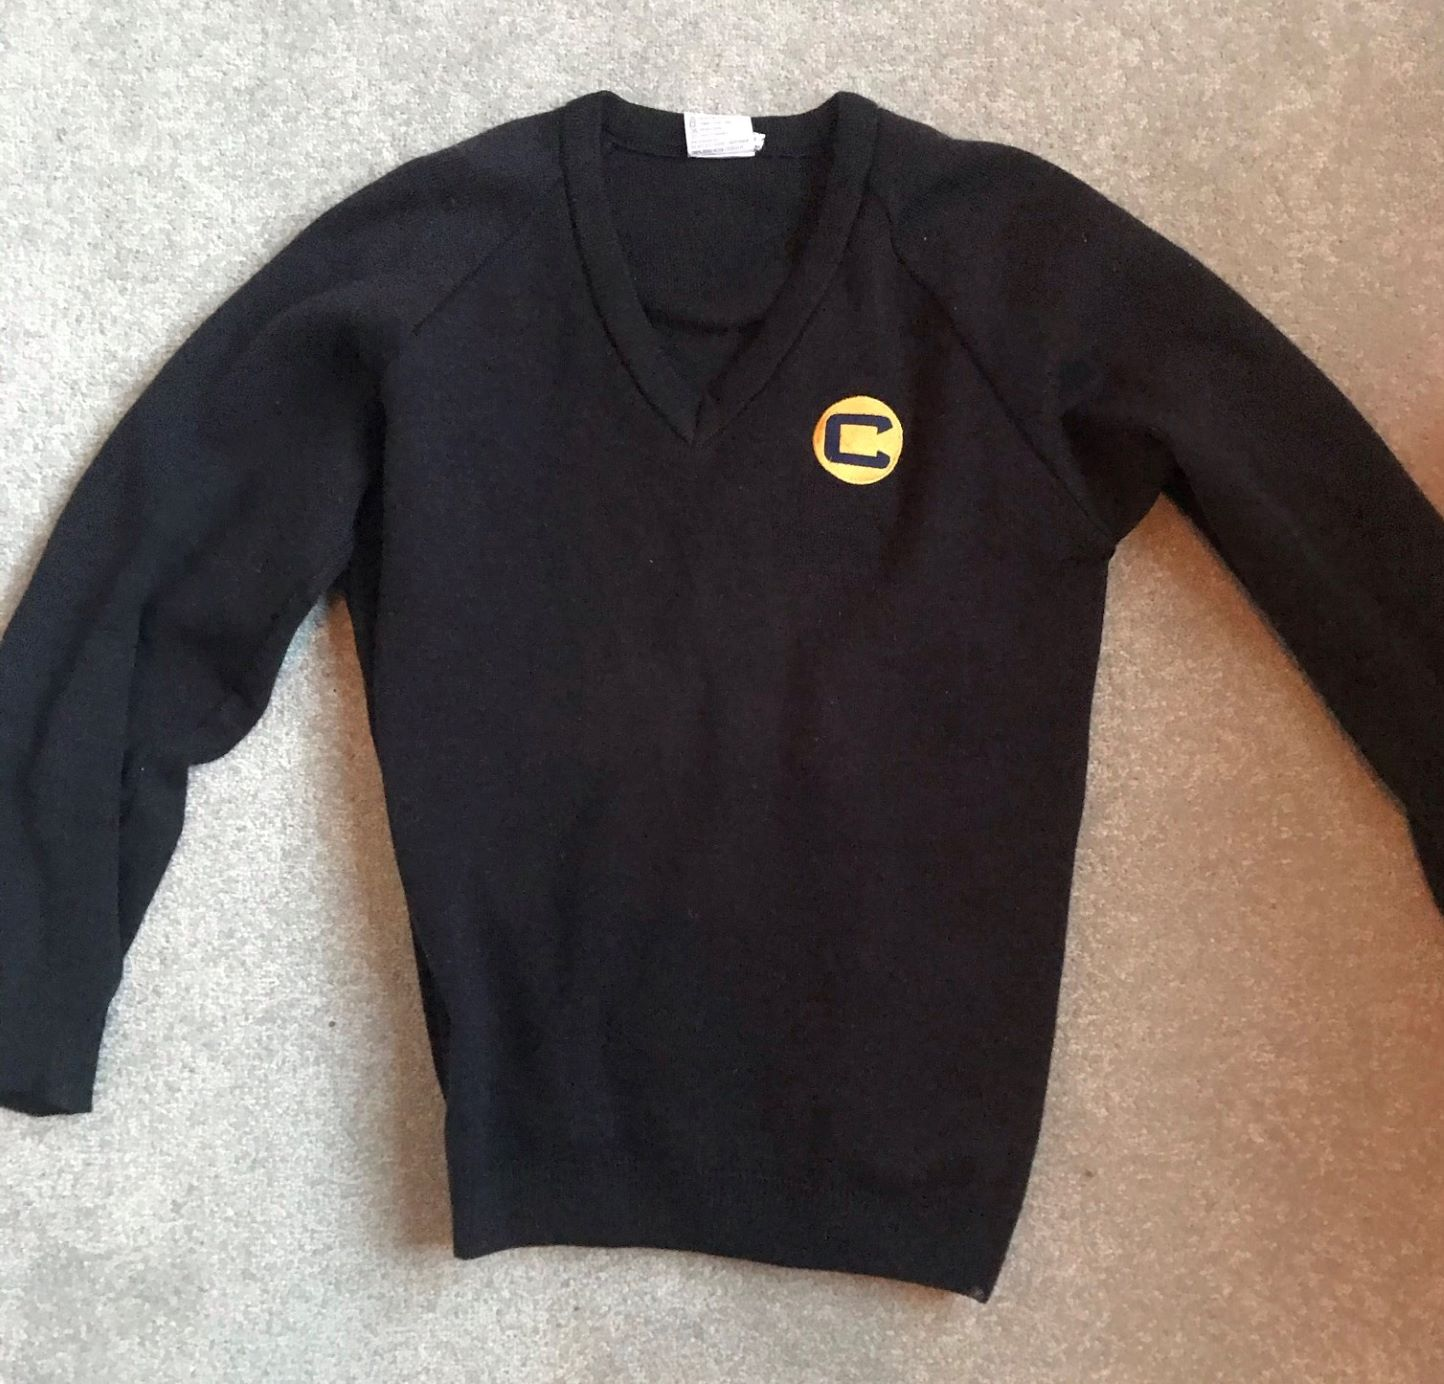 Charter North Jumper: Size 30